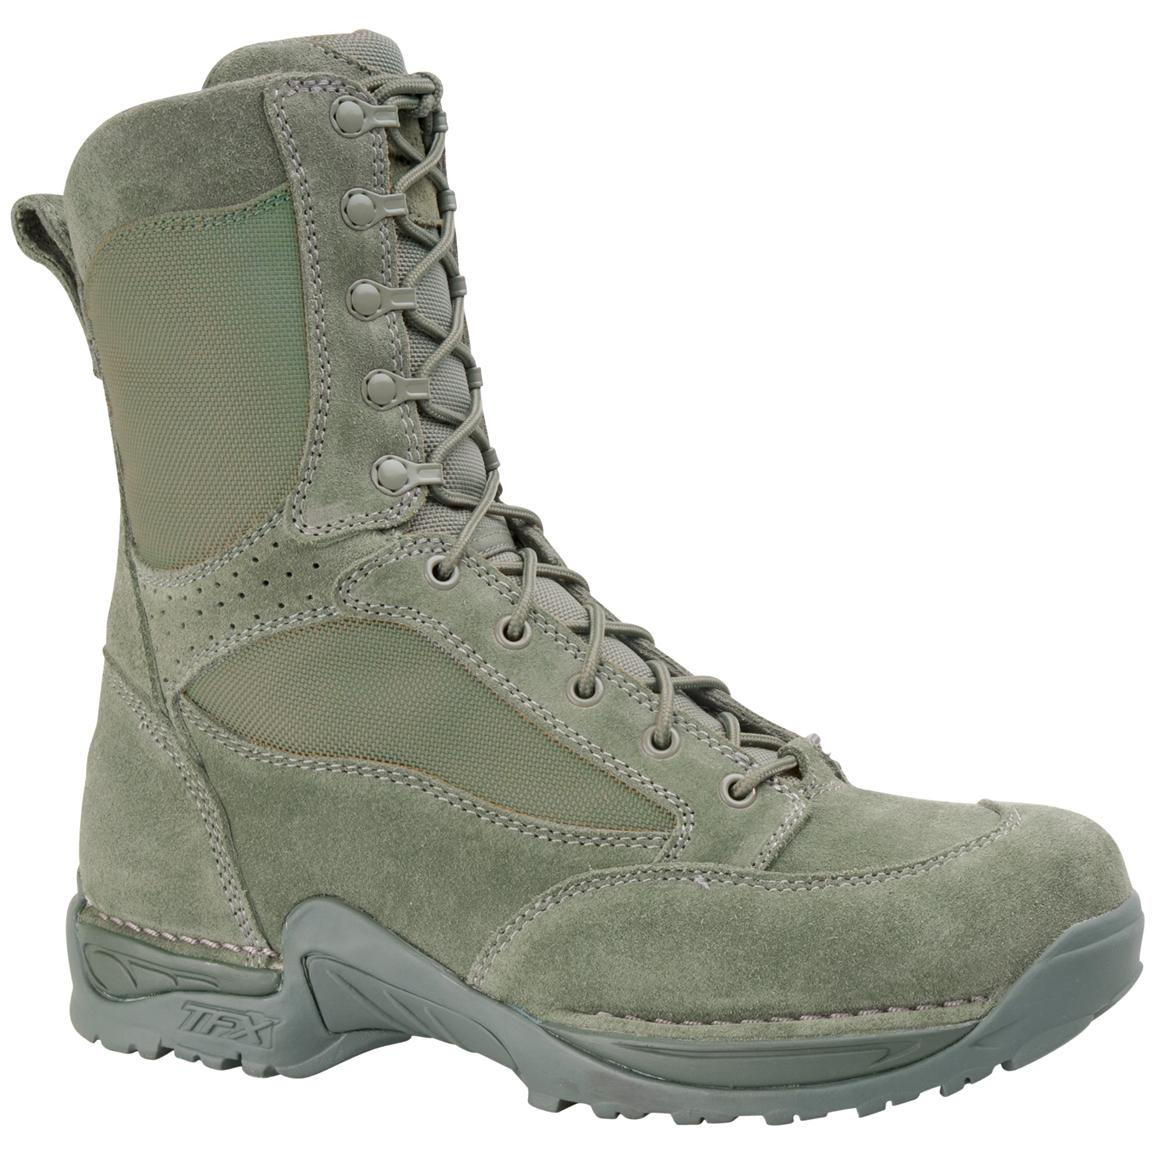 Air Force Combat Boots bWmGEYWo